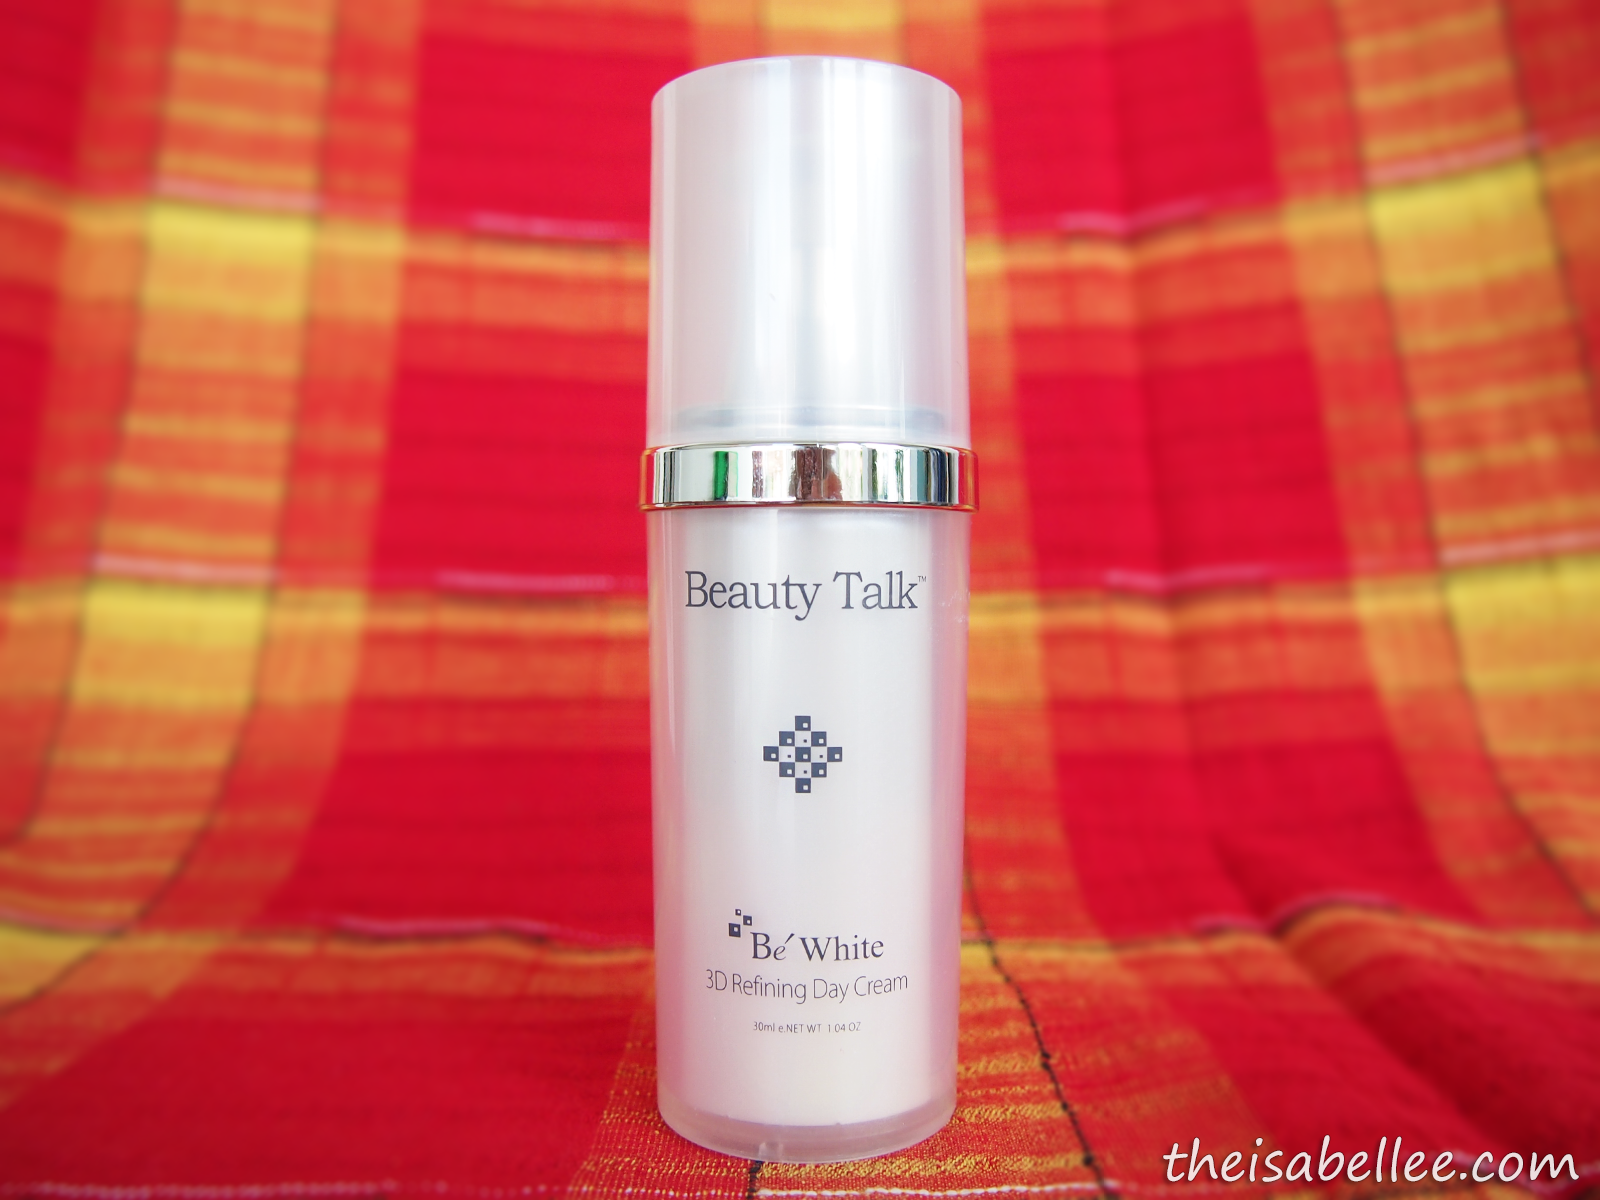 Beauty Talk 3D Refining Day Cream